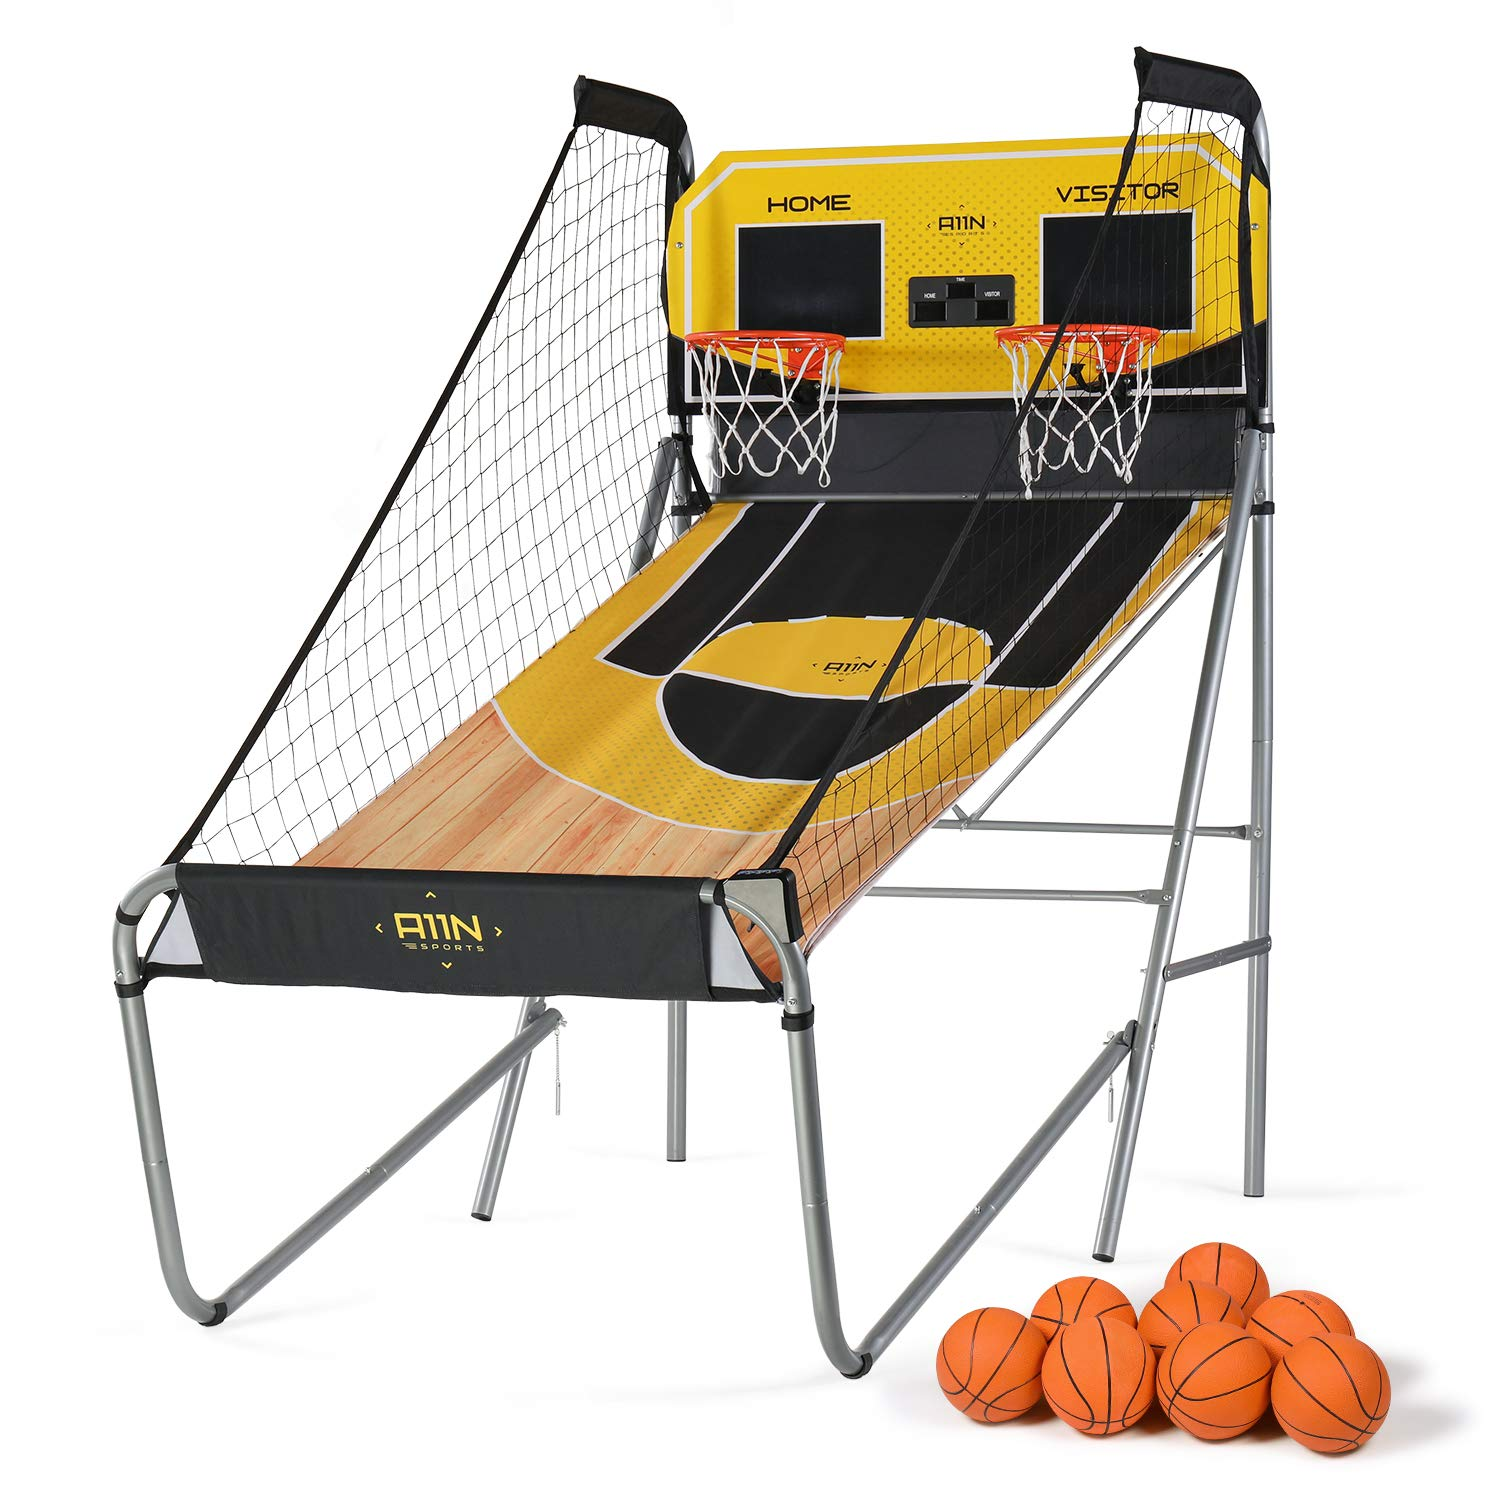 A11N Sharpshooter Dual Shot Basketball Shootout Game, 8 Game Options & 8 Balls, Home Office Indoor Arcade Game with Heavy-Duty Frame, LED Scoreboard and Sound Effects, Folding for Space Saving by A11N SPORTS